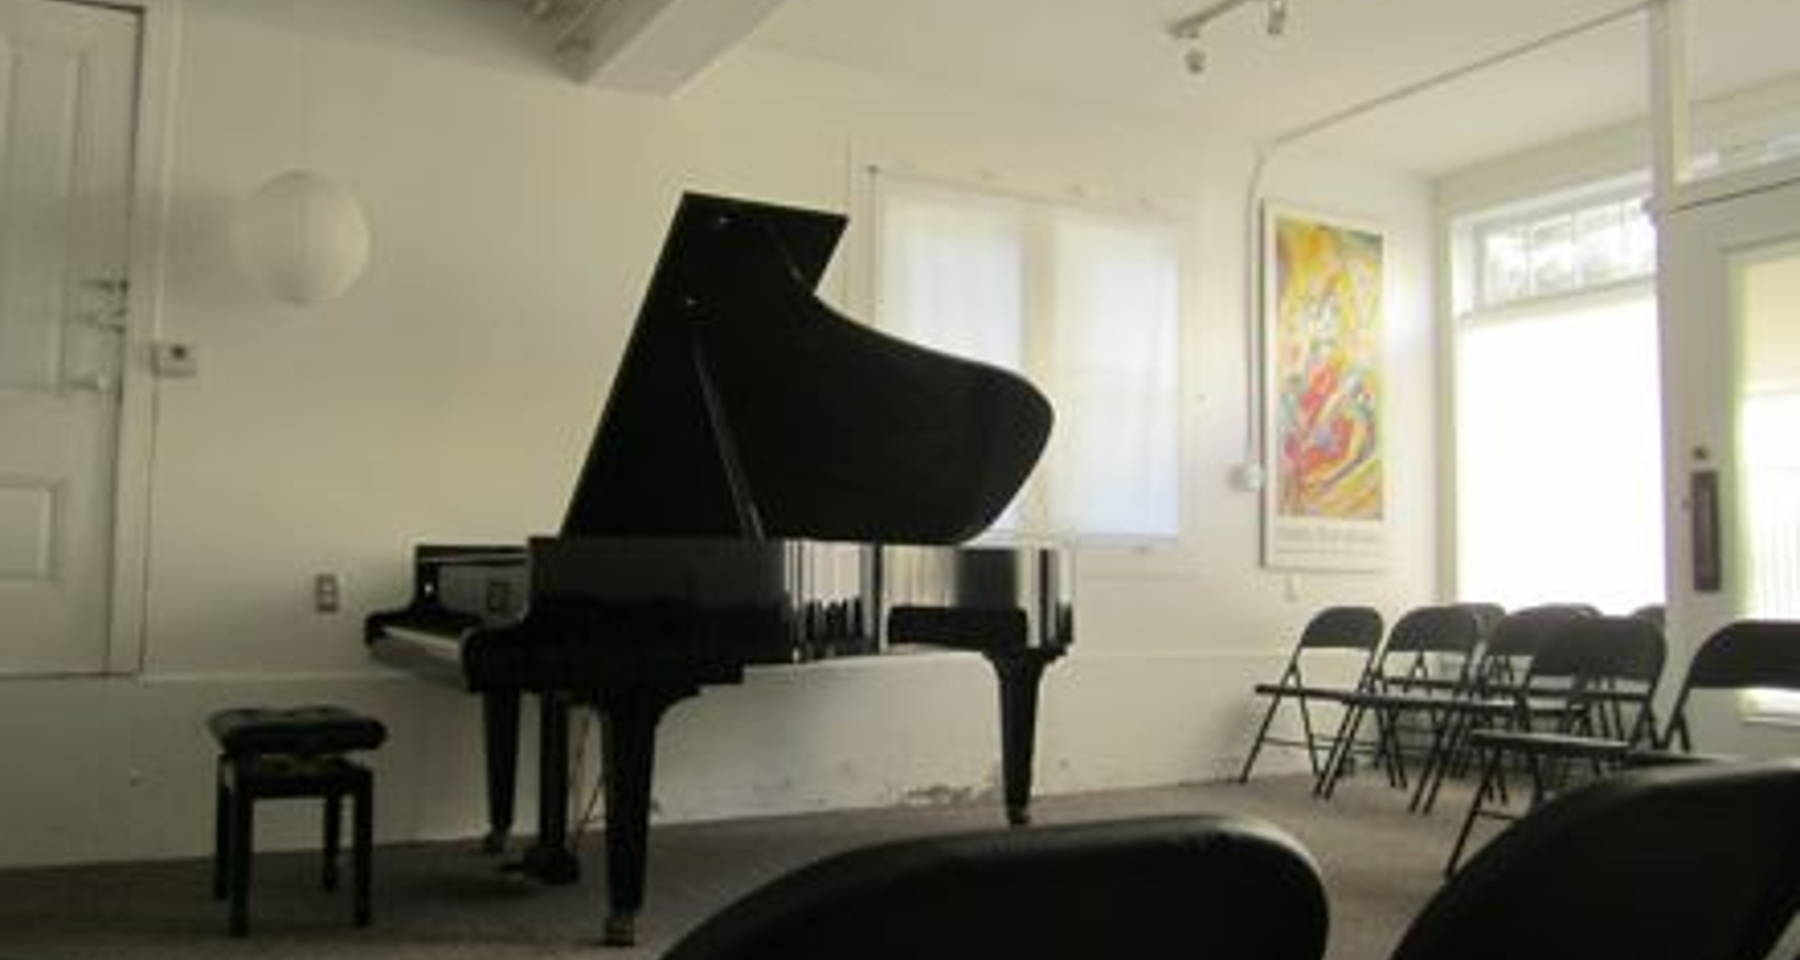 Aperitif Concert at 405 Shrader, the Haight's Intimate Recital Hall